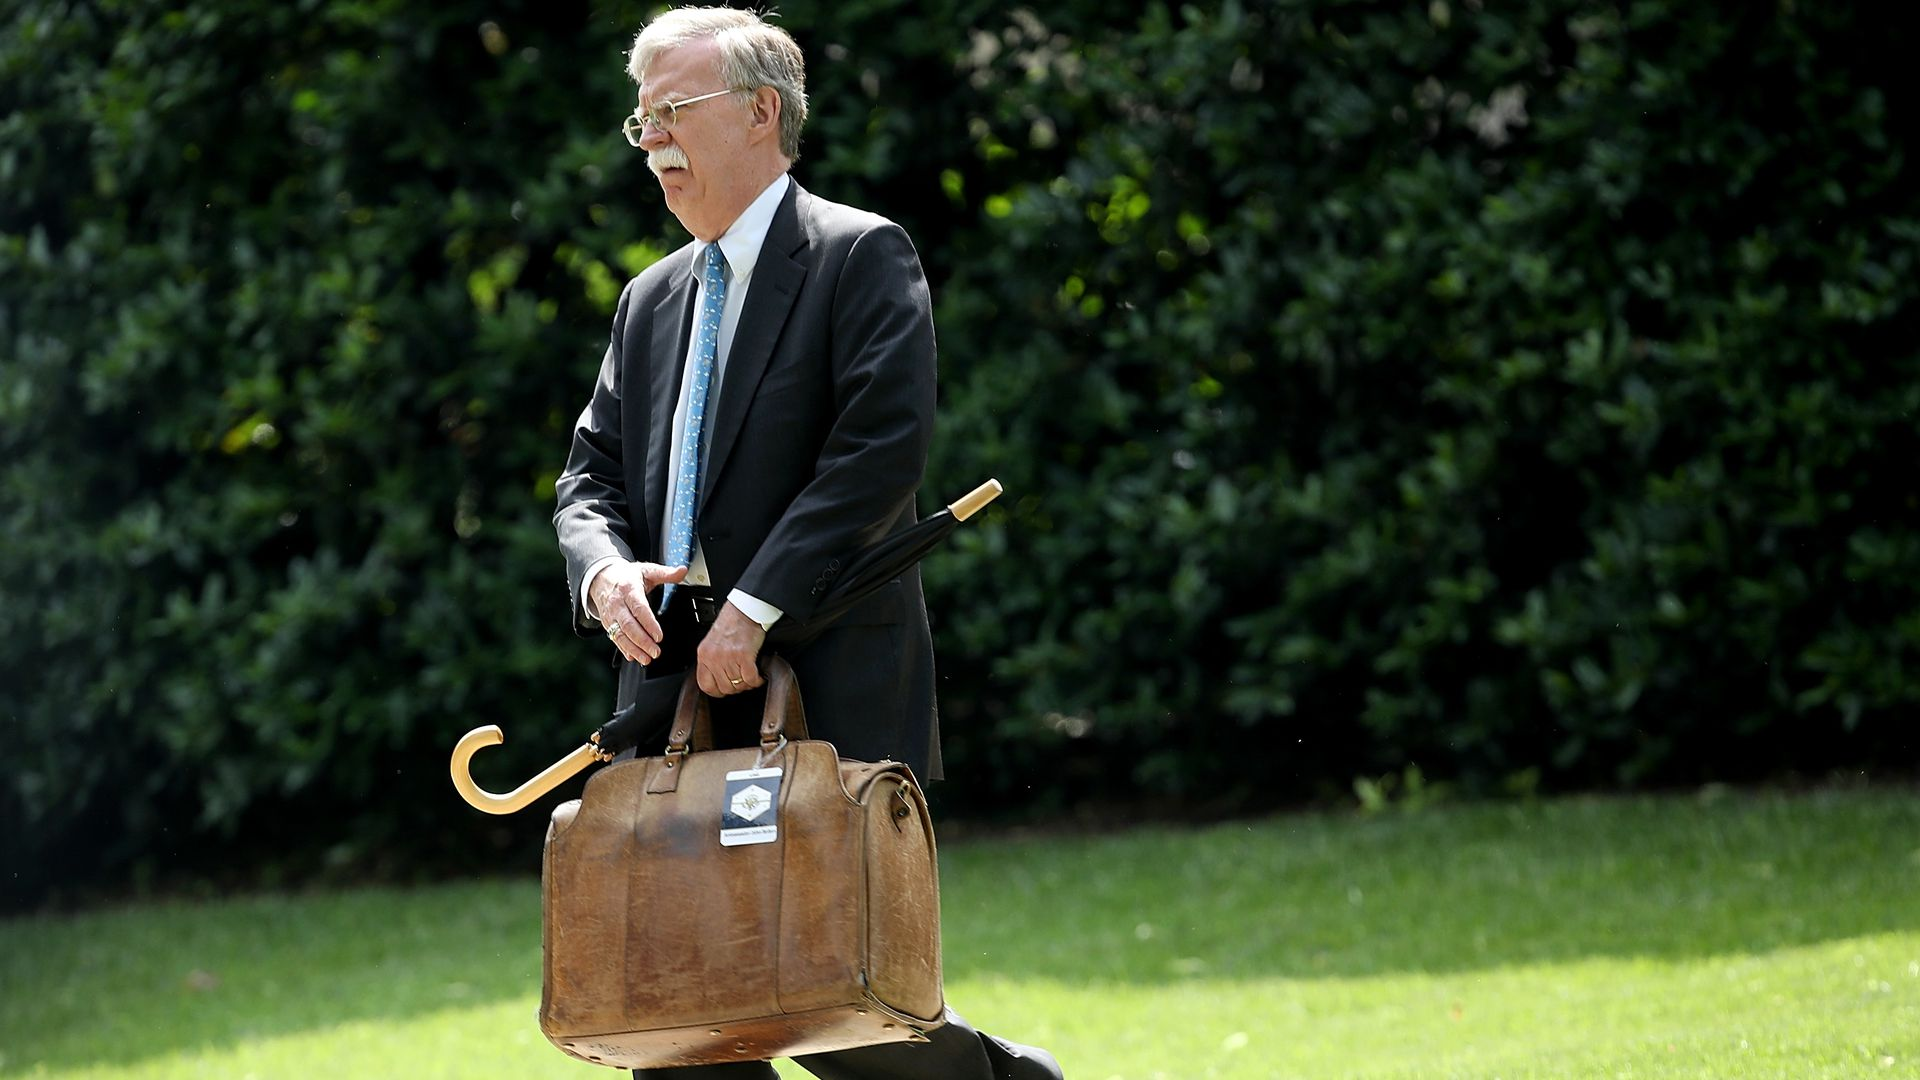 John Bolton carrying luggage and umbrella